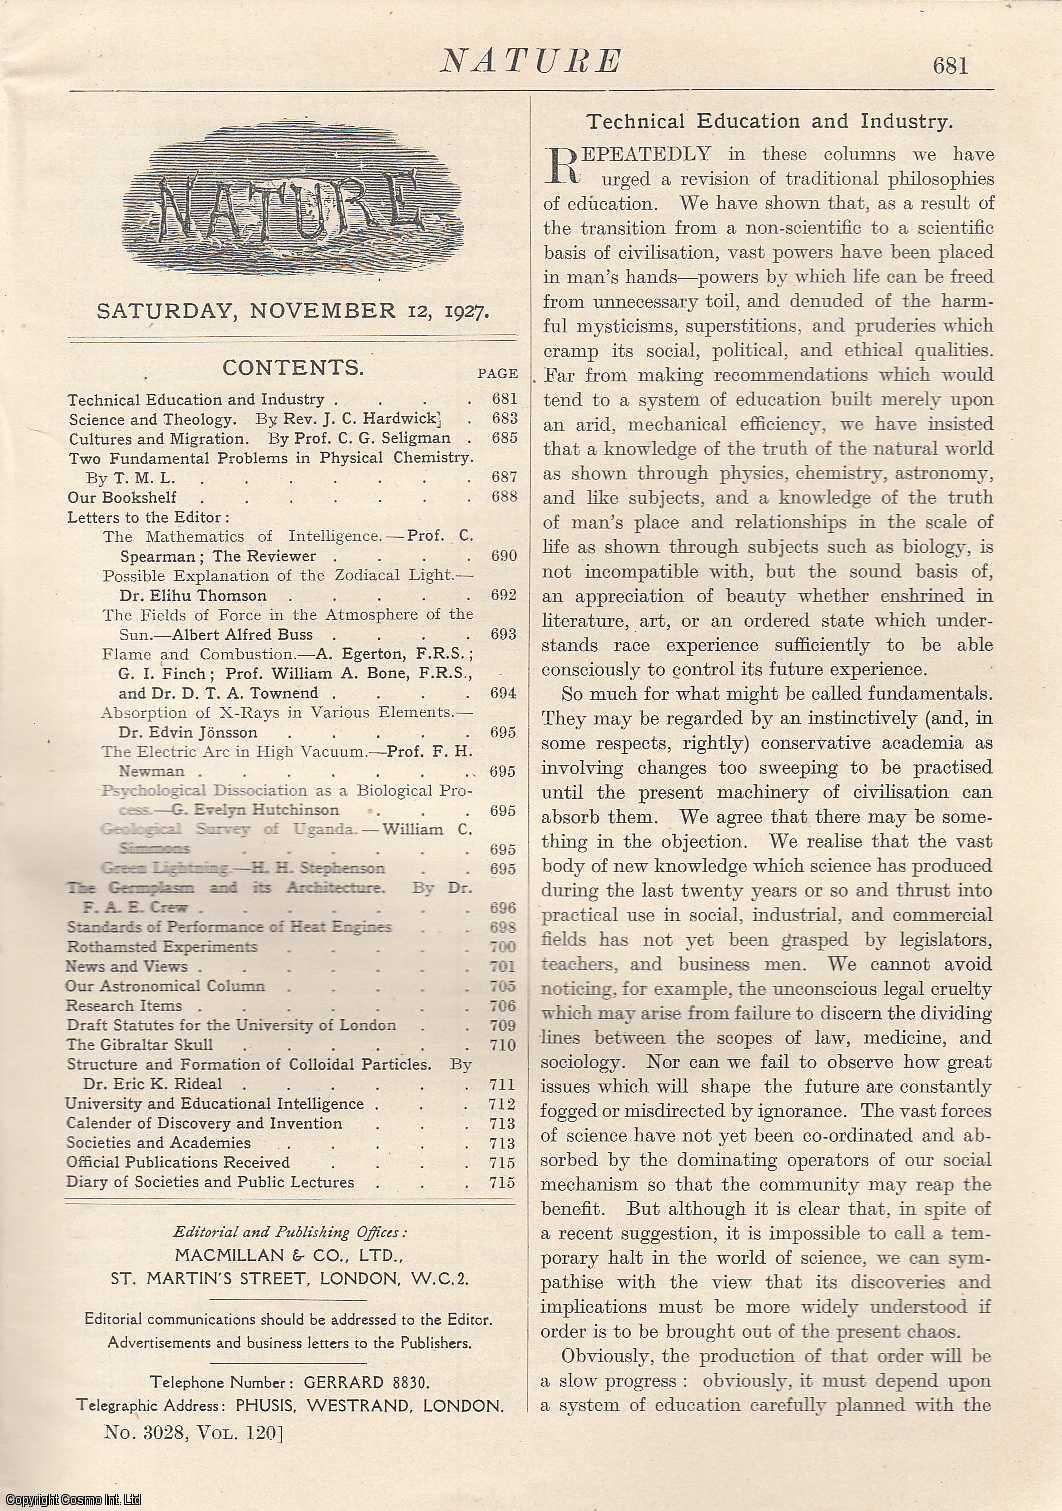 NATURE - Nature, Volume 120, Number 3028. Nature, A Weekly Journal of Science. Saturday, November 12th, 1927.